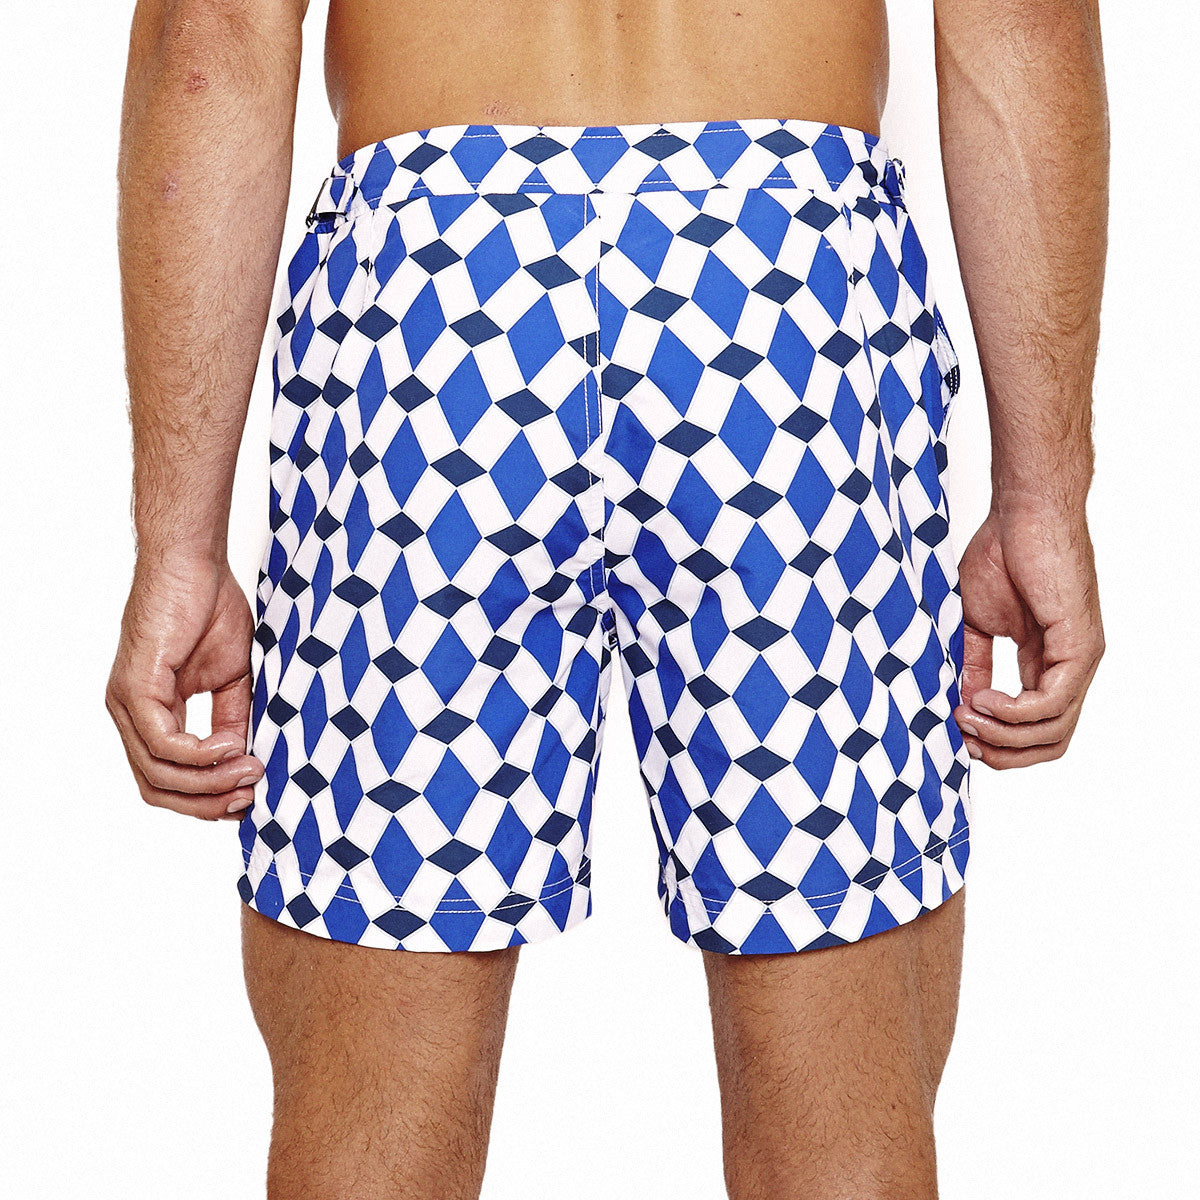 Mens Beach Shorts (Marrakech Navy) Back